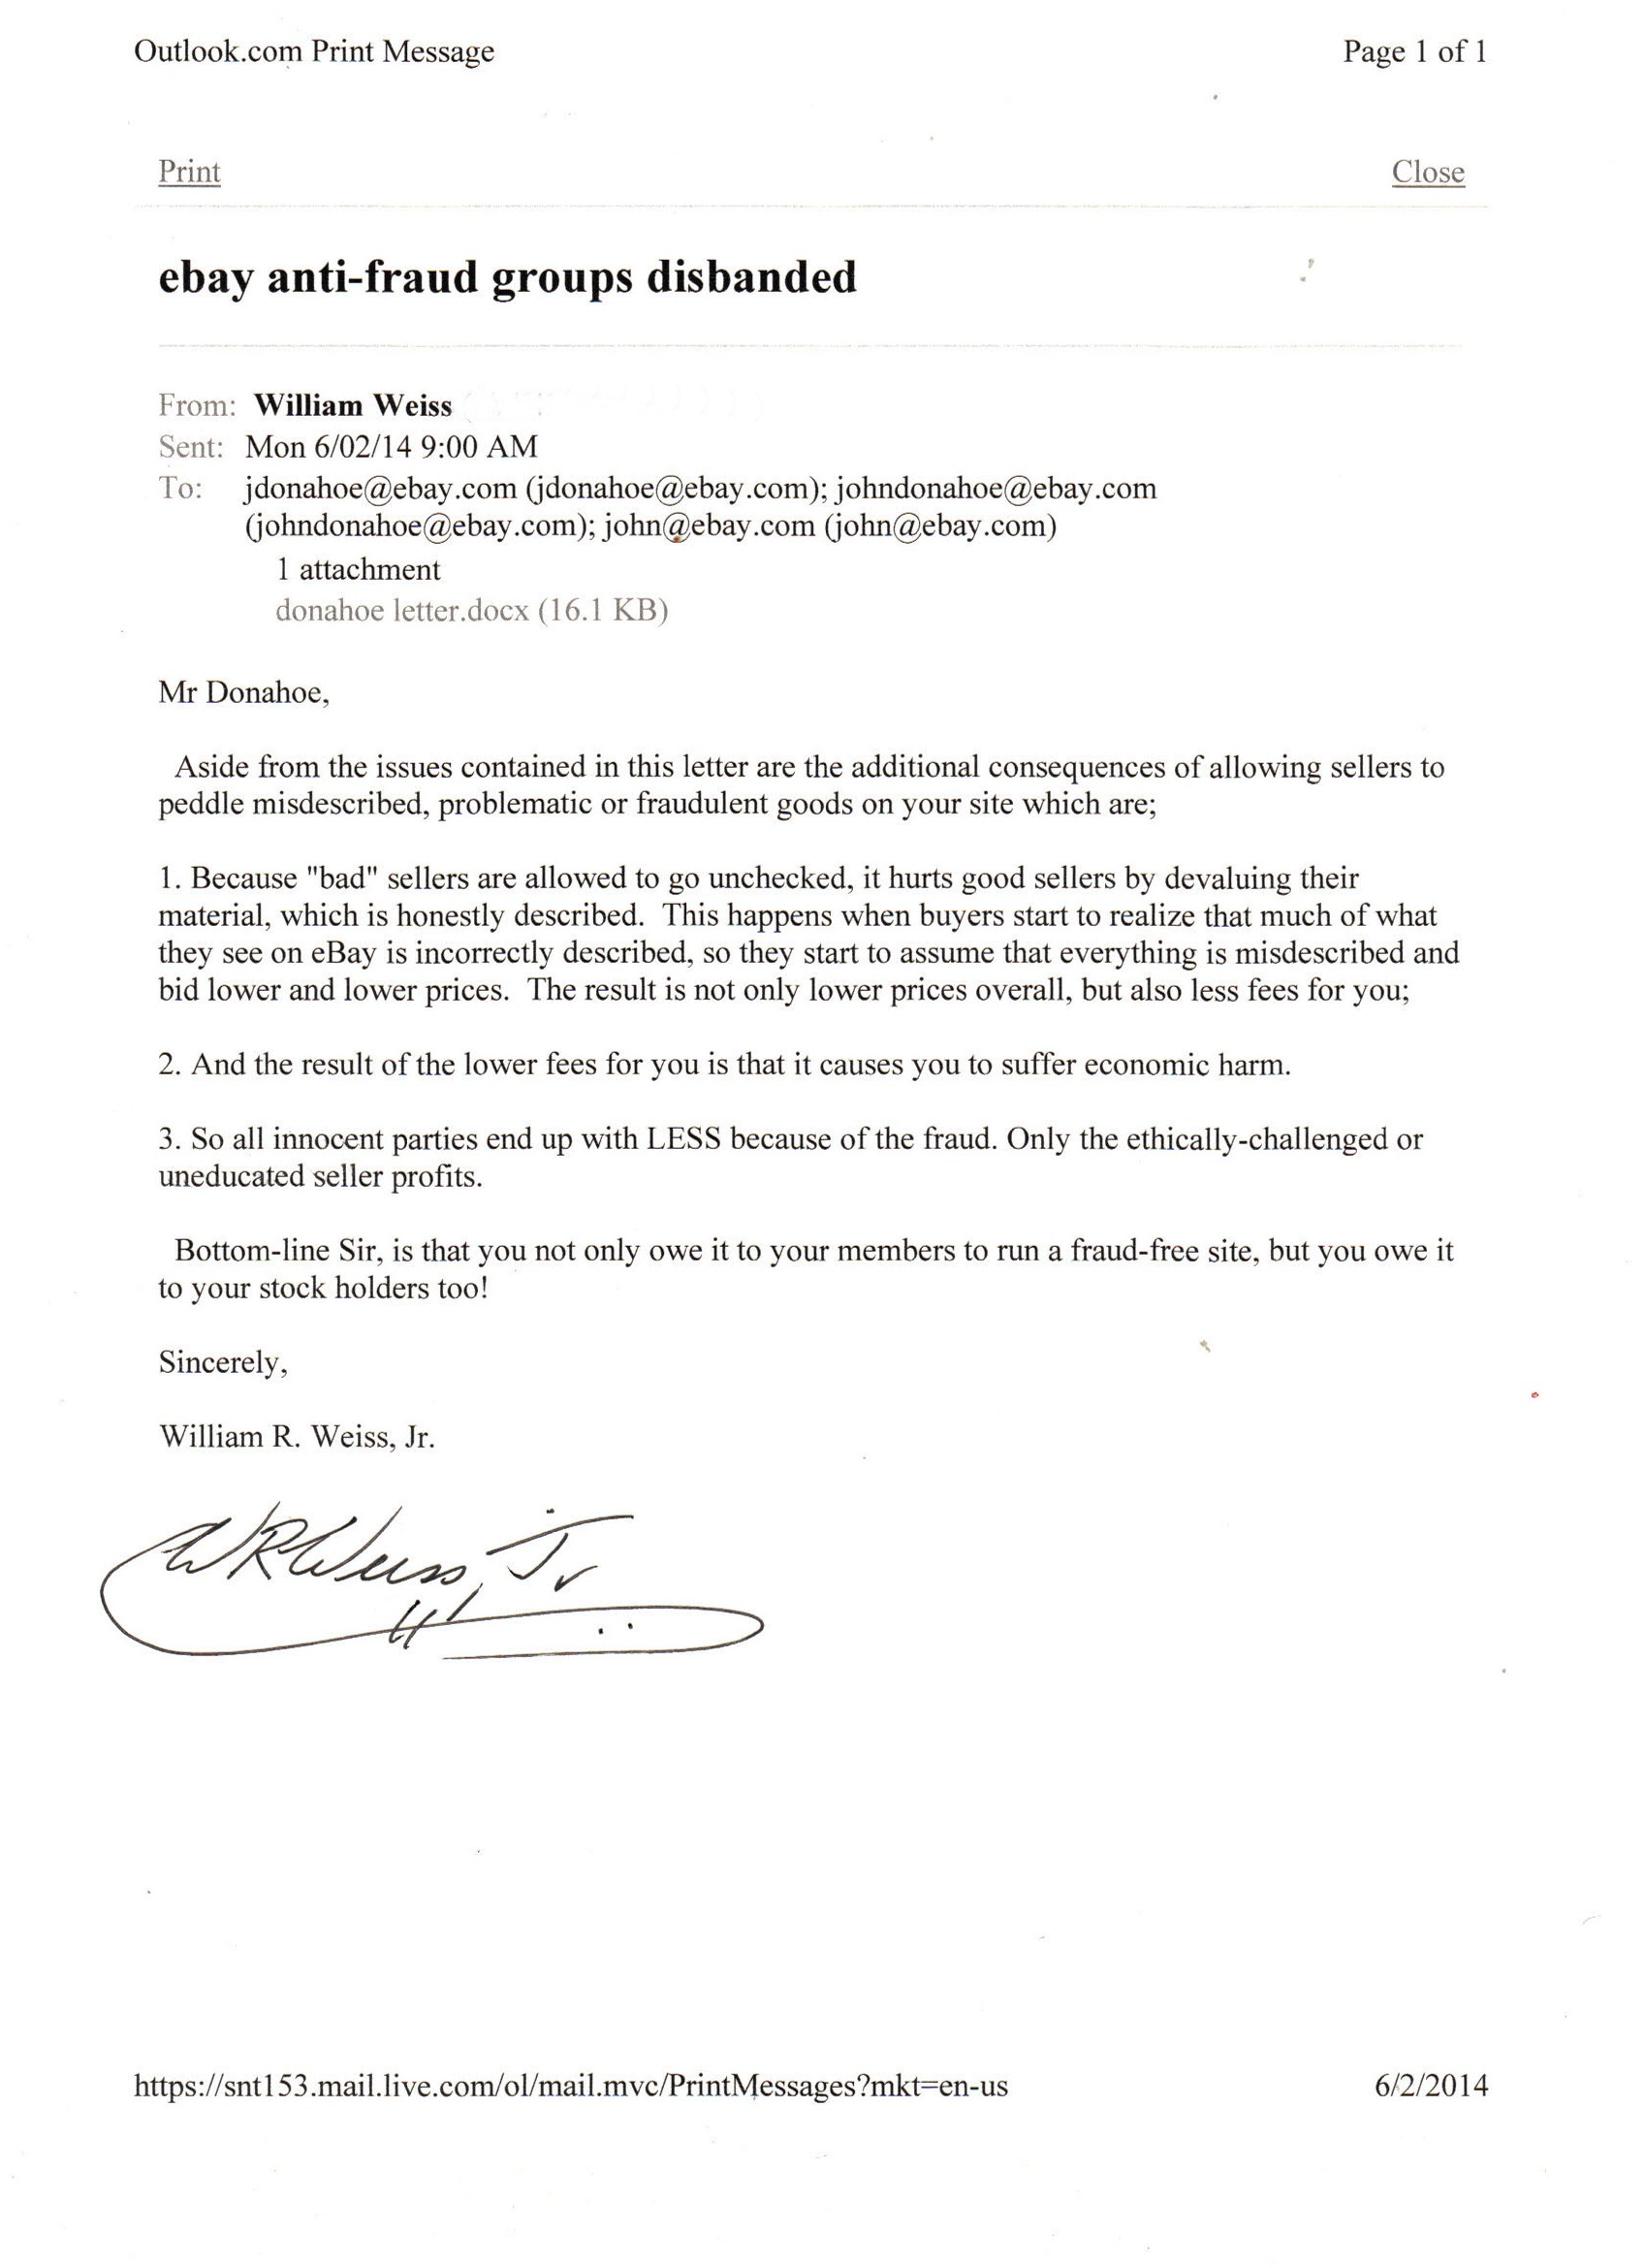 Letters To Ebay Ceo Donahoe Protesting Emr Elimination Stamp Community Forum